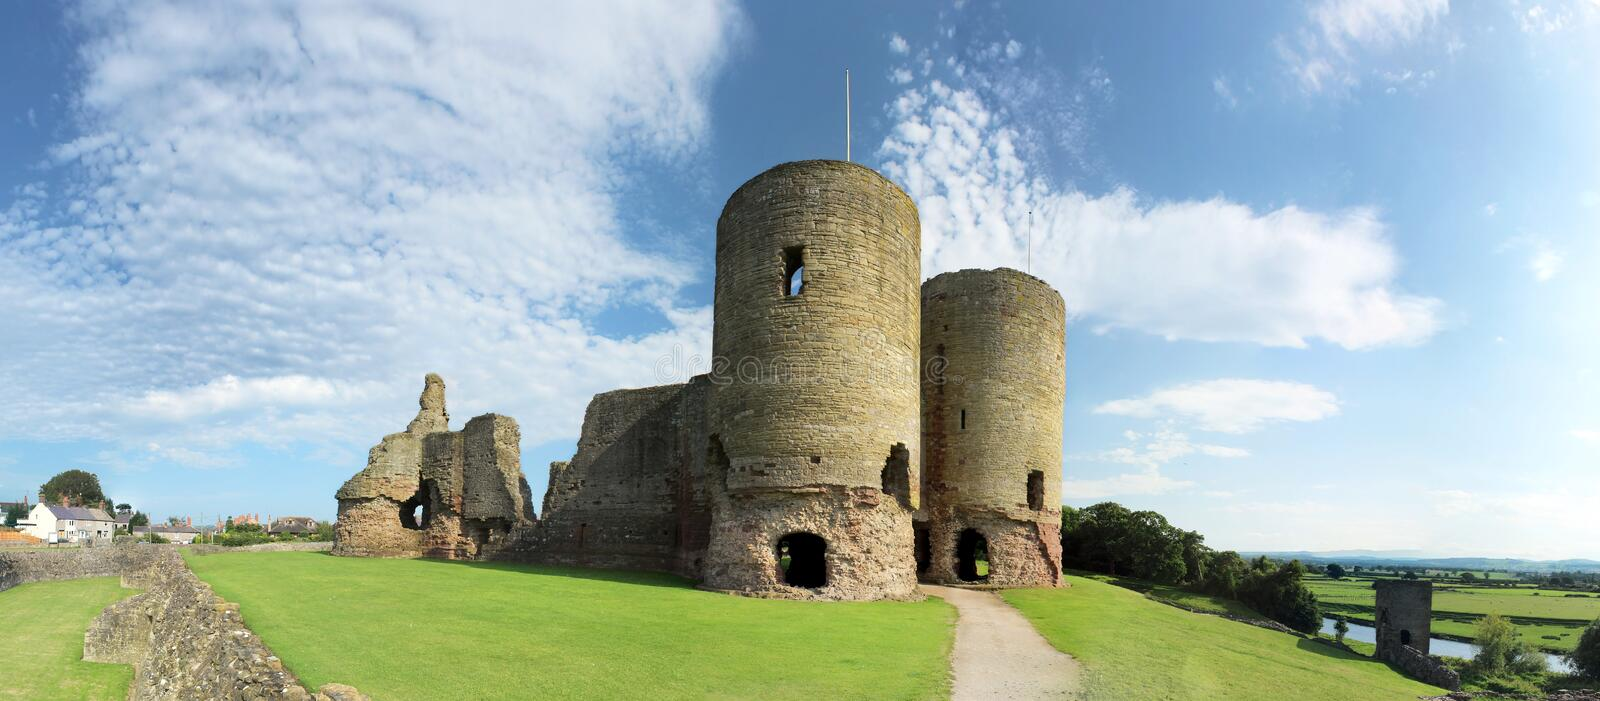 Rhuddlan Castle - North Wales. Rhuddlan Castle - Castell Rhuddlan is a castle located in Rhuddlan, Denbighshire, North Wales. It was erected by King Edward I in stock photography